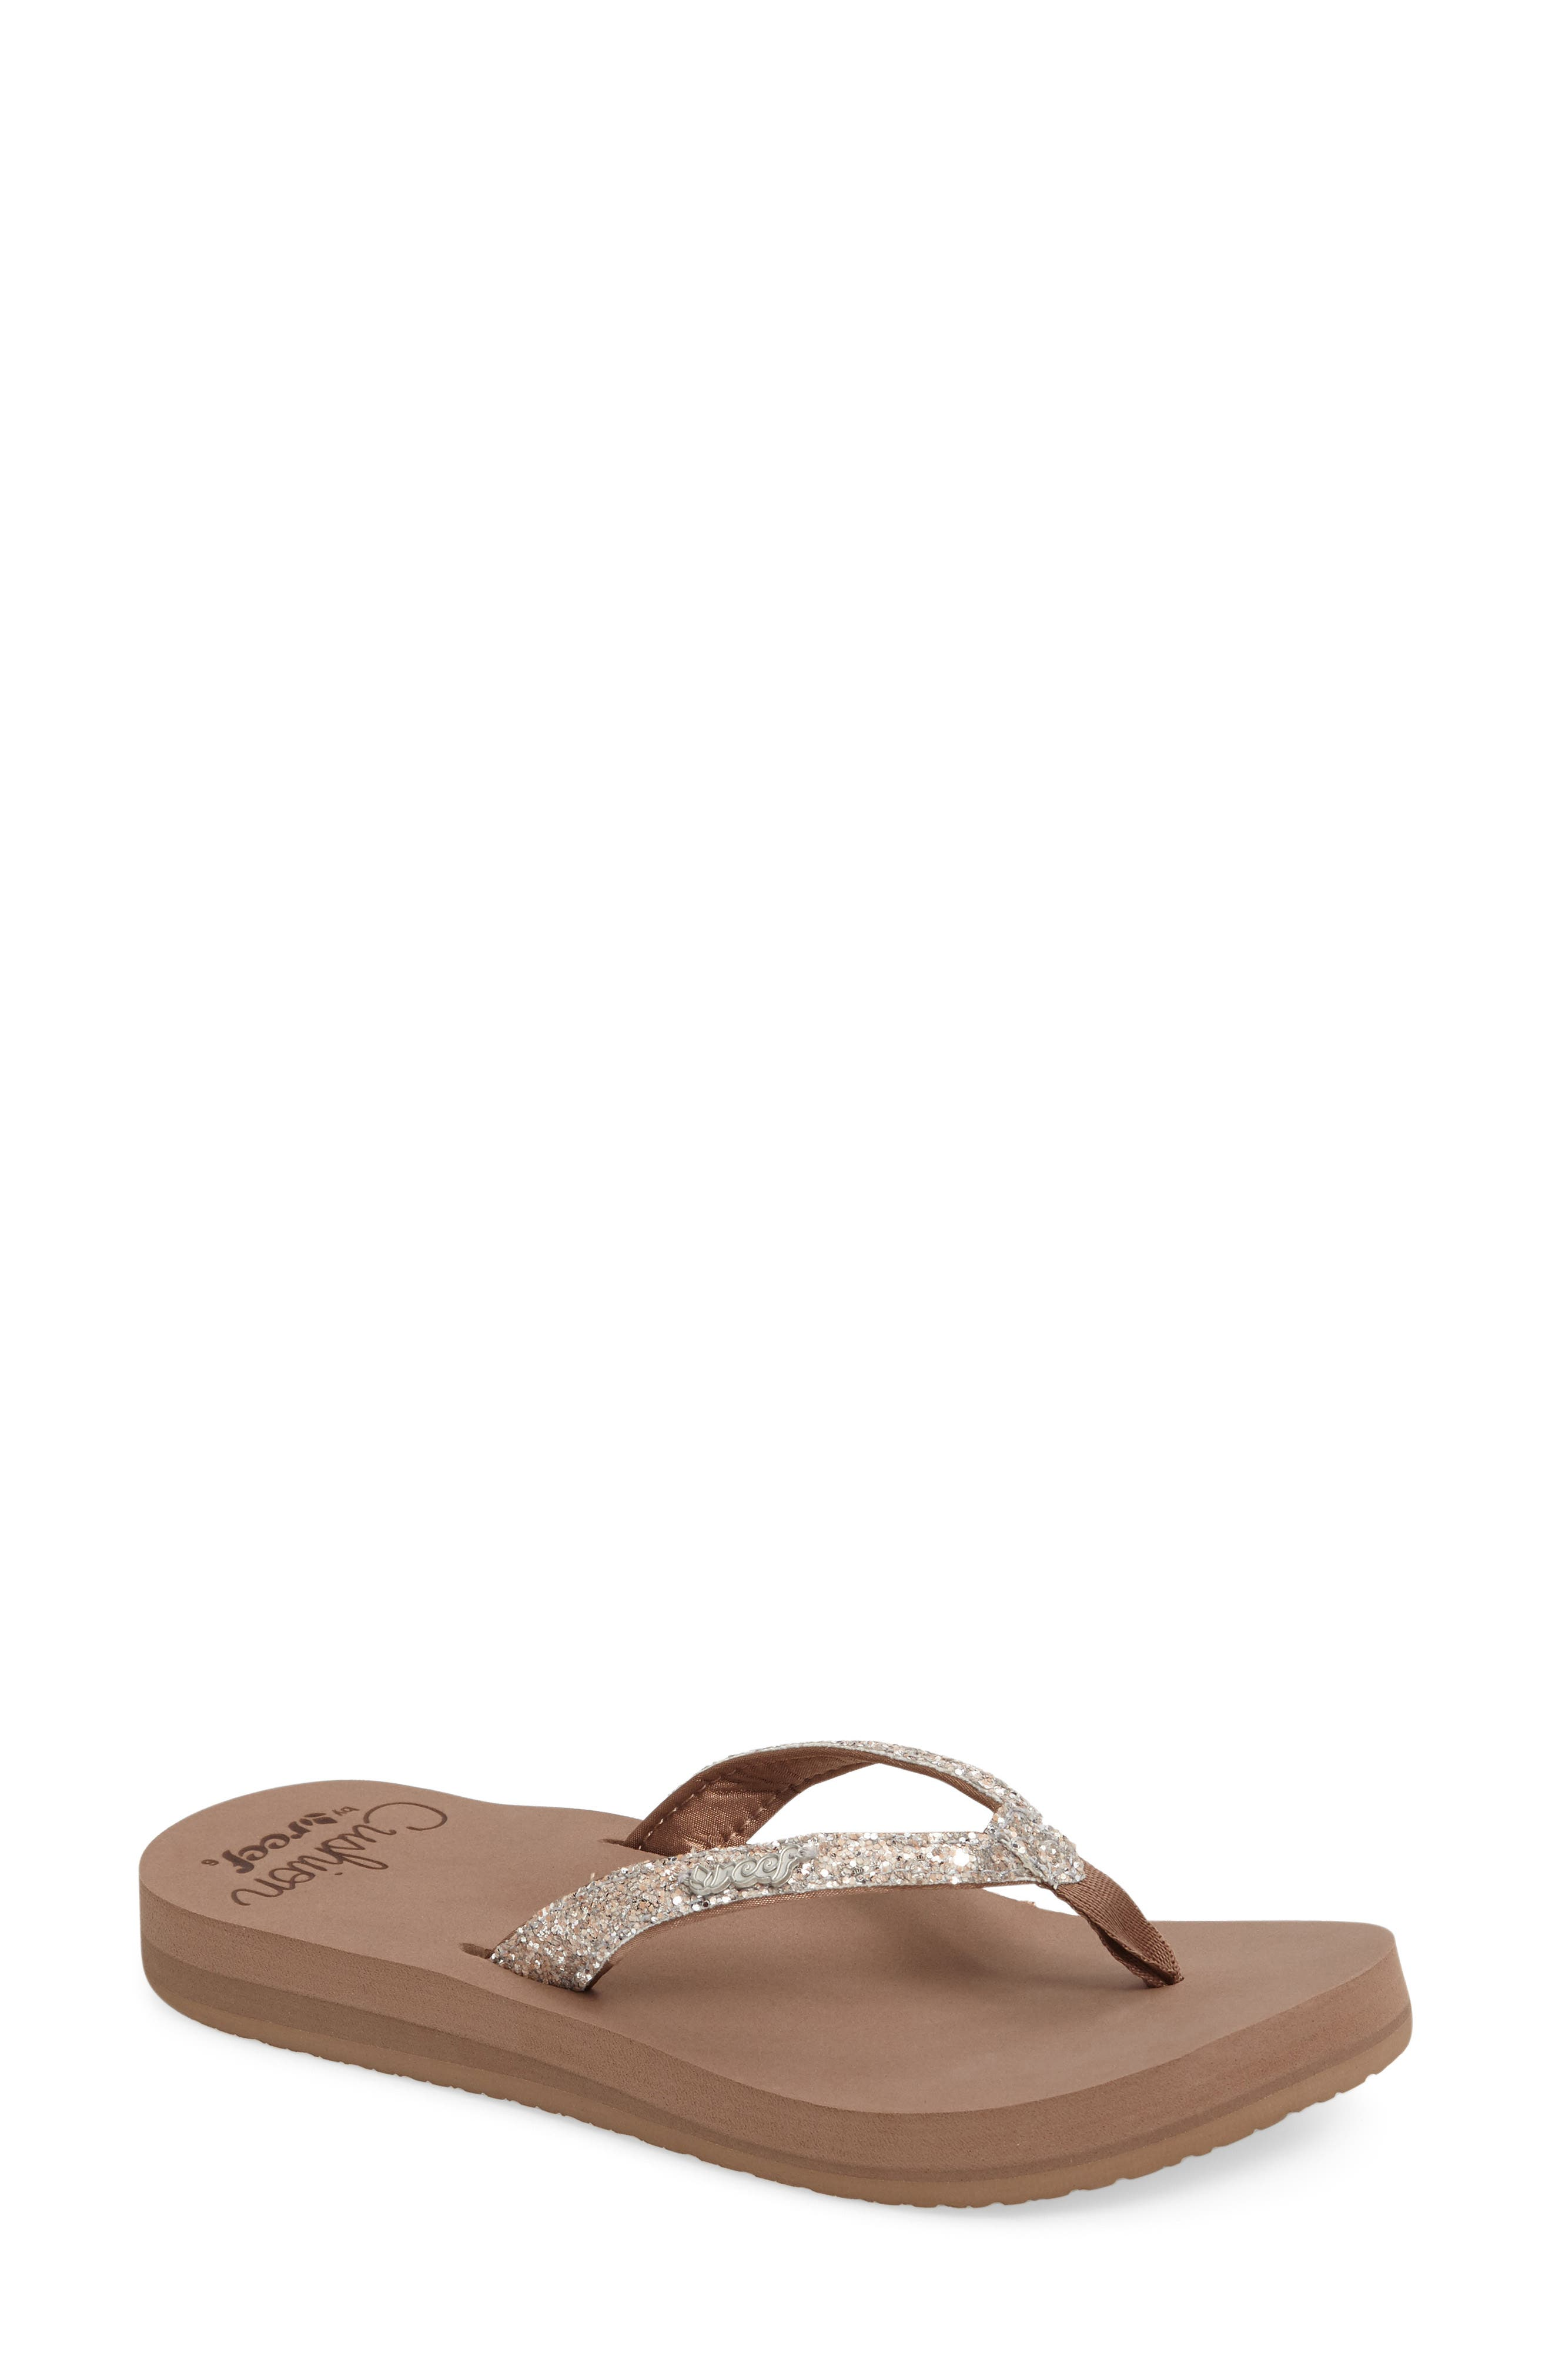 Reef Star Cushion Flip Flop (Women)